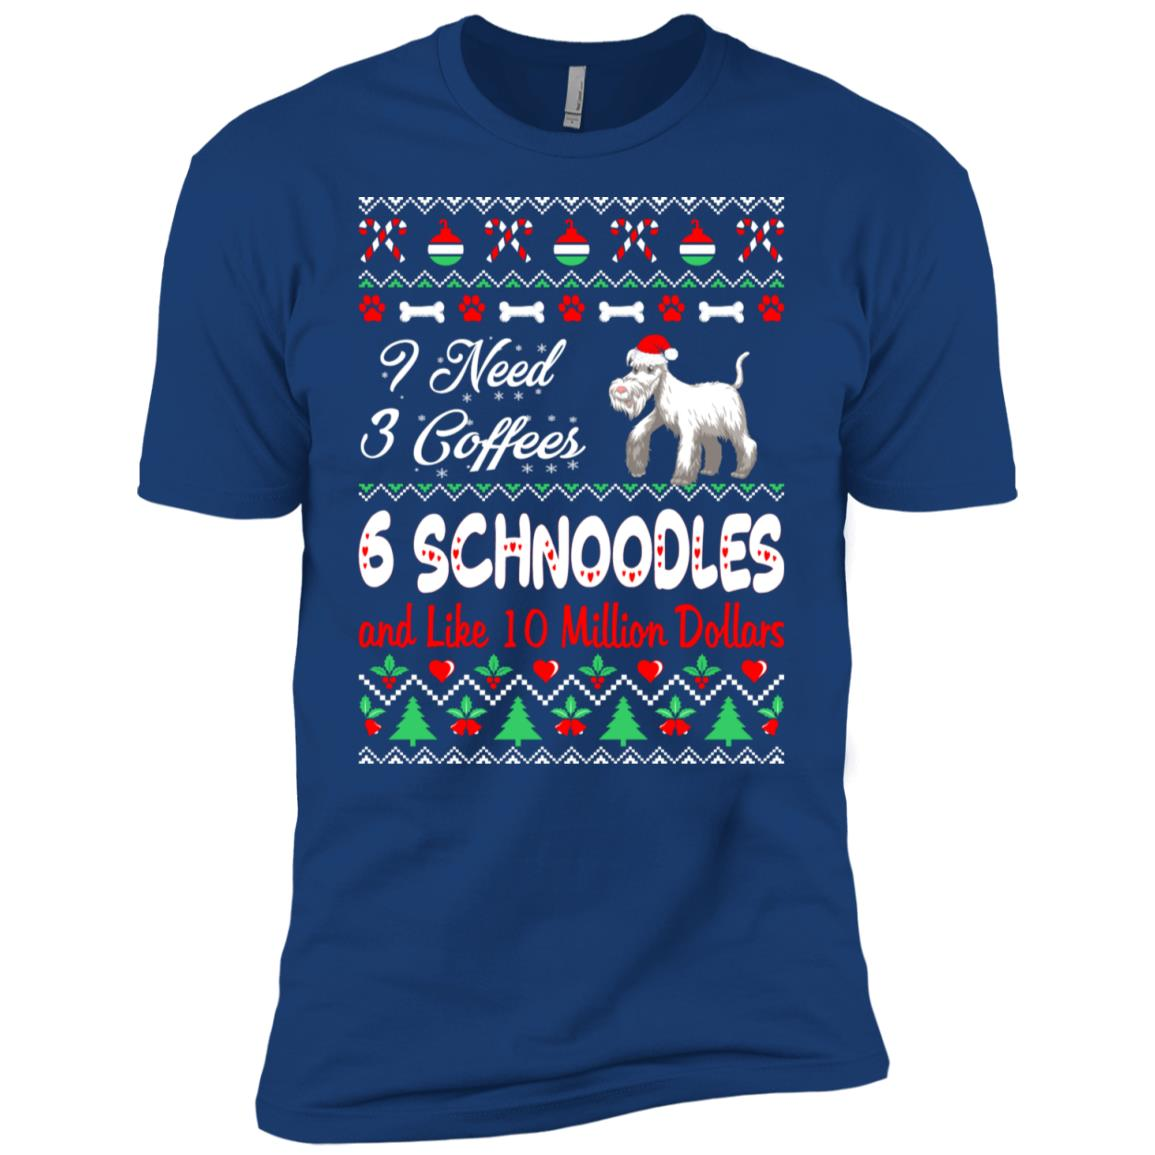 Need 3 Coffees 6 Schnoodles Christmas Ugly Sweater Men Short Sleeve T-Shirt